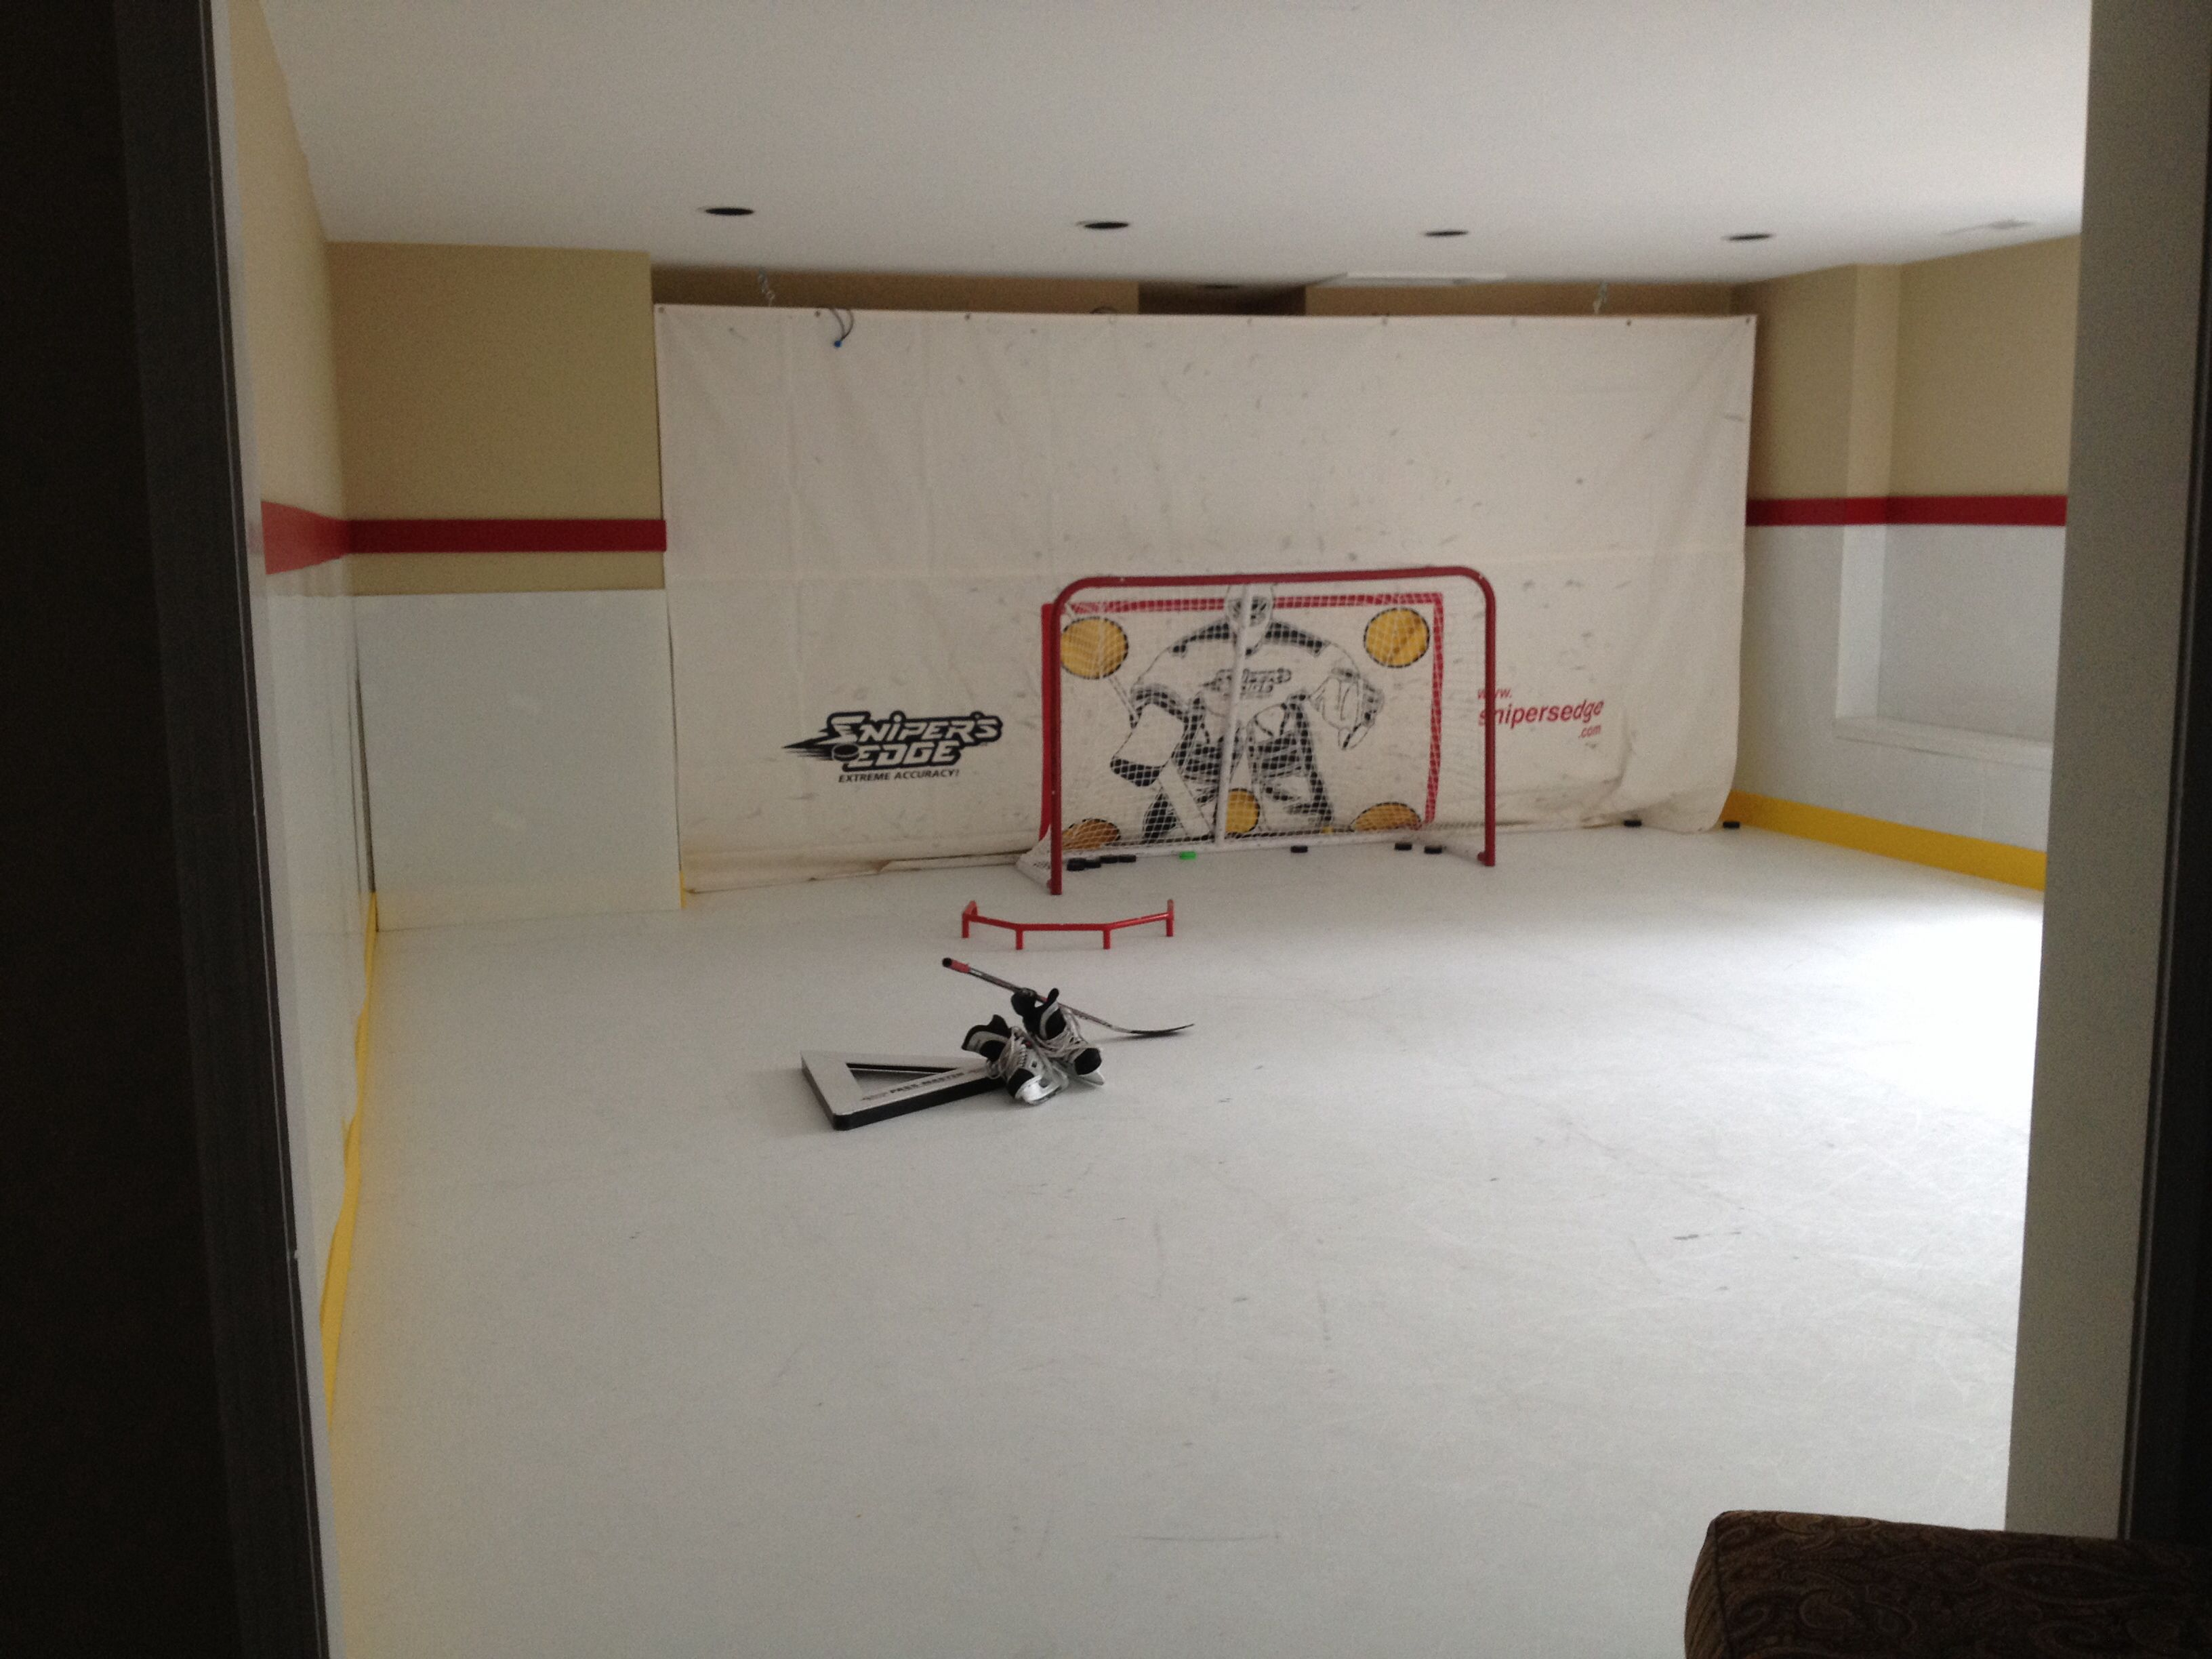 synthetic ice rink in our basement for the boys u003d fun look